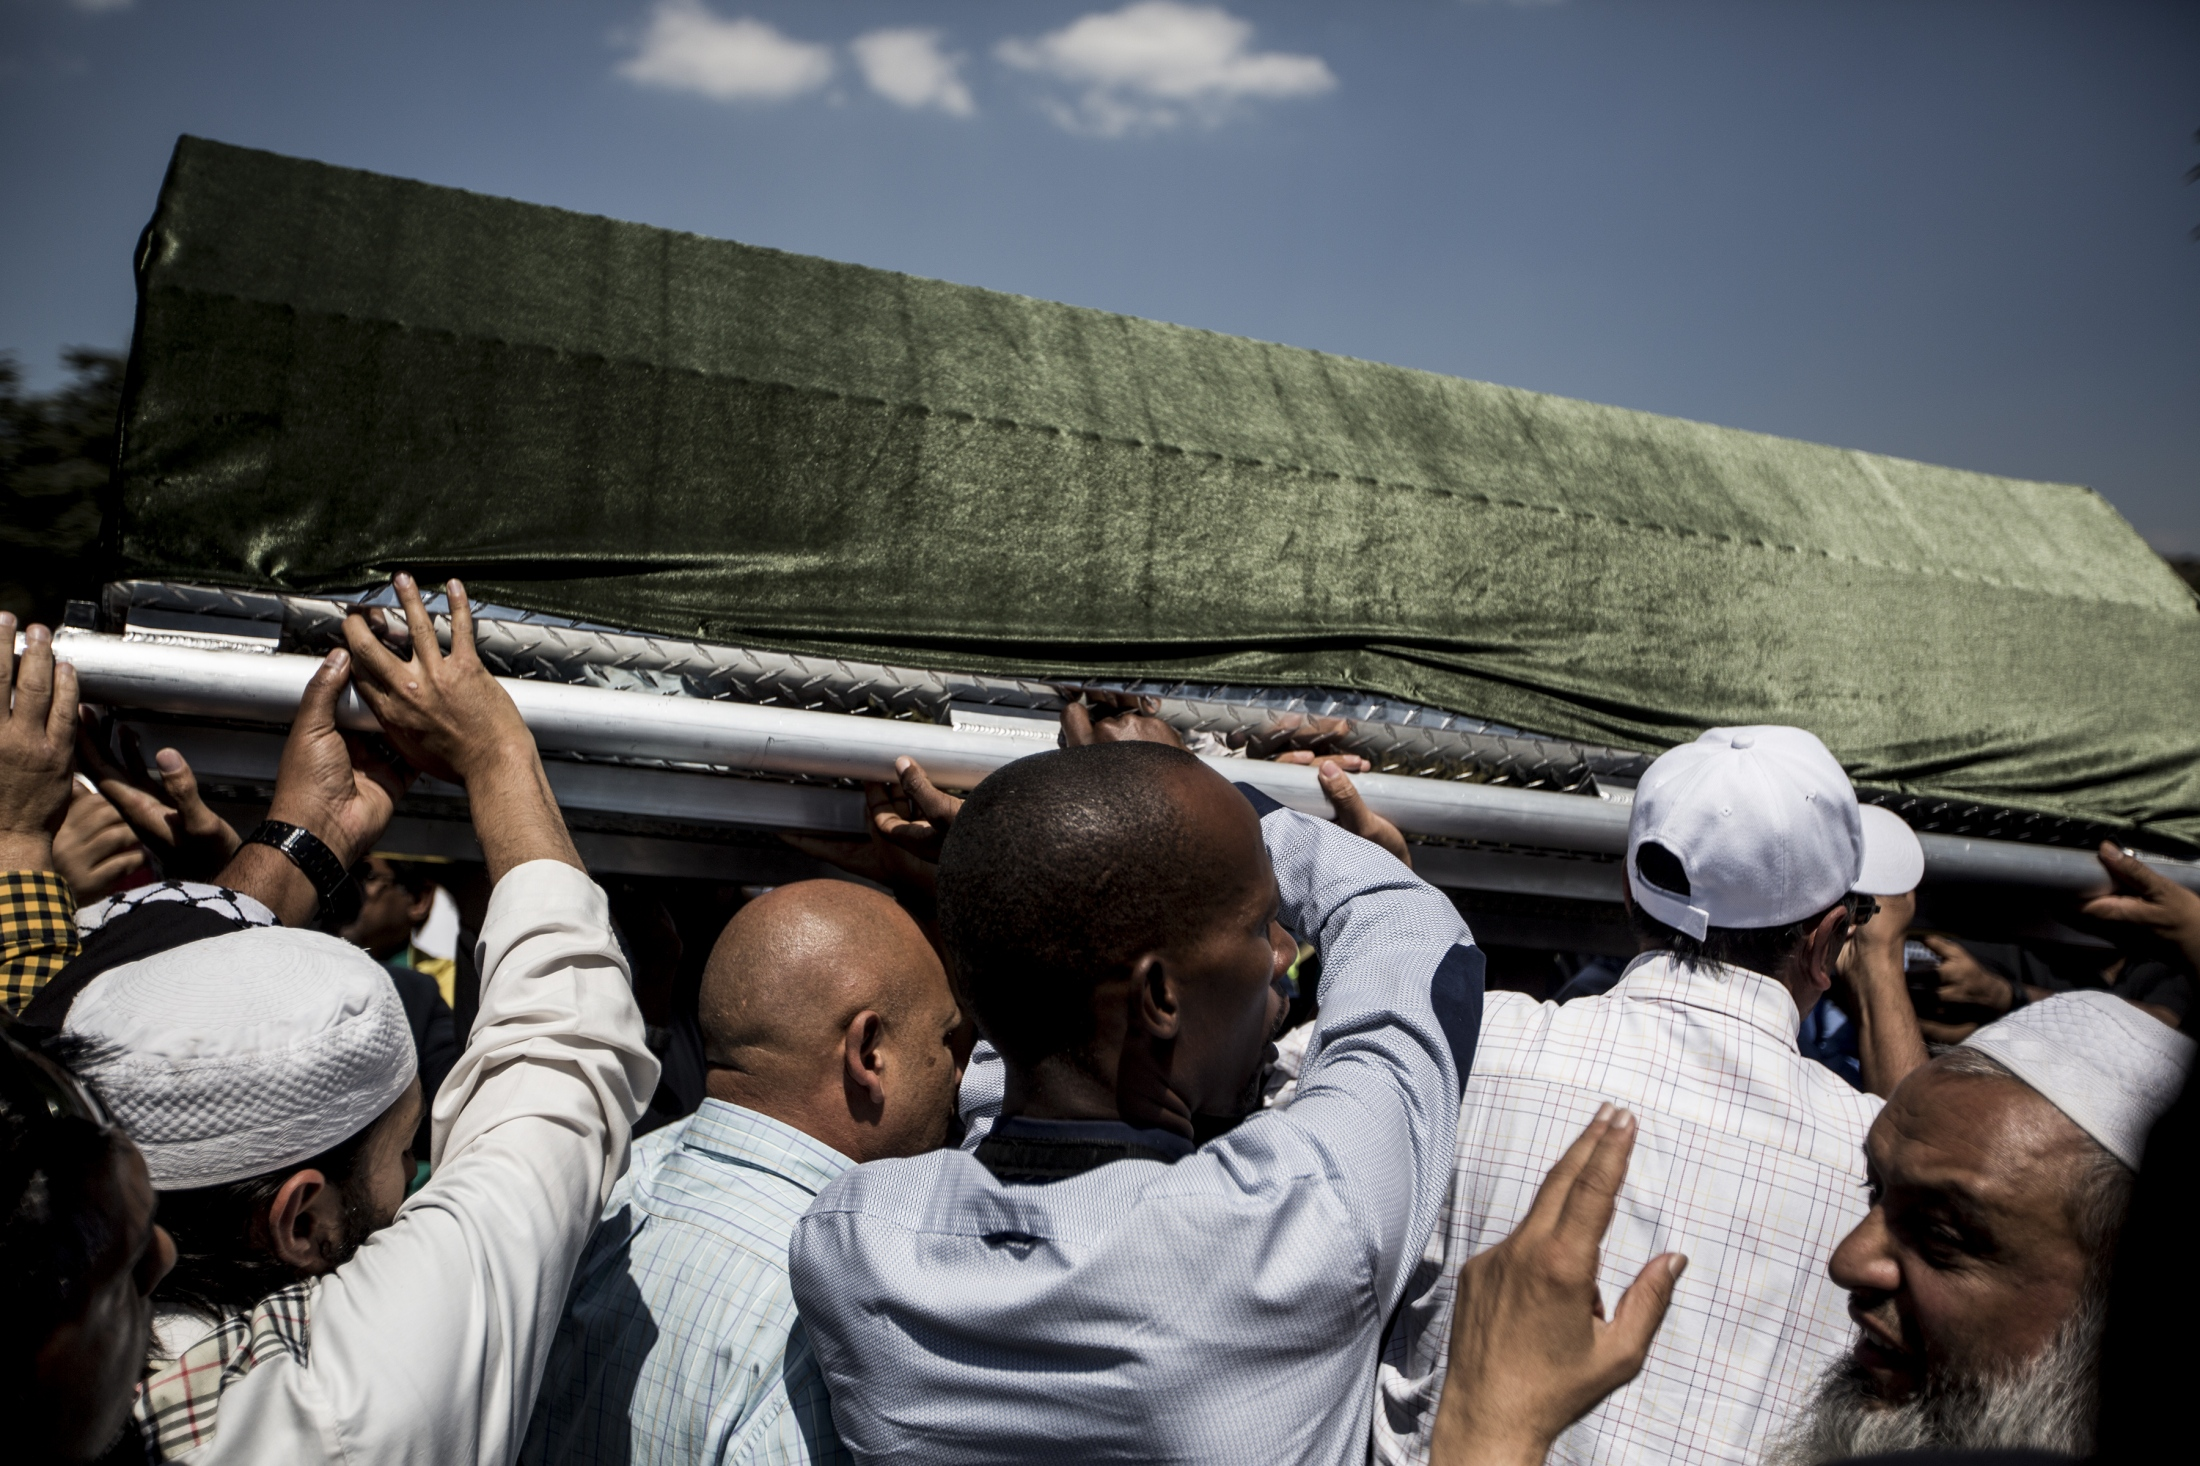 Pall bearers carry the casket of Anti-apartheid stalwart Ahmed Kathrada who was imprisoned with Nelson Mandela at his funeral on March 29, 2017 in Johannesburg, South Africa.